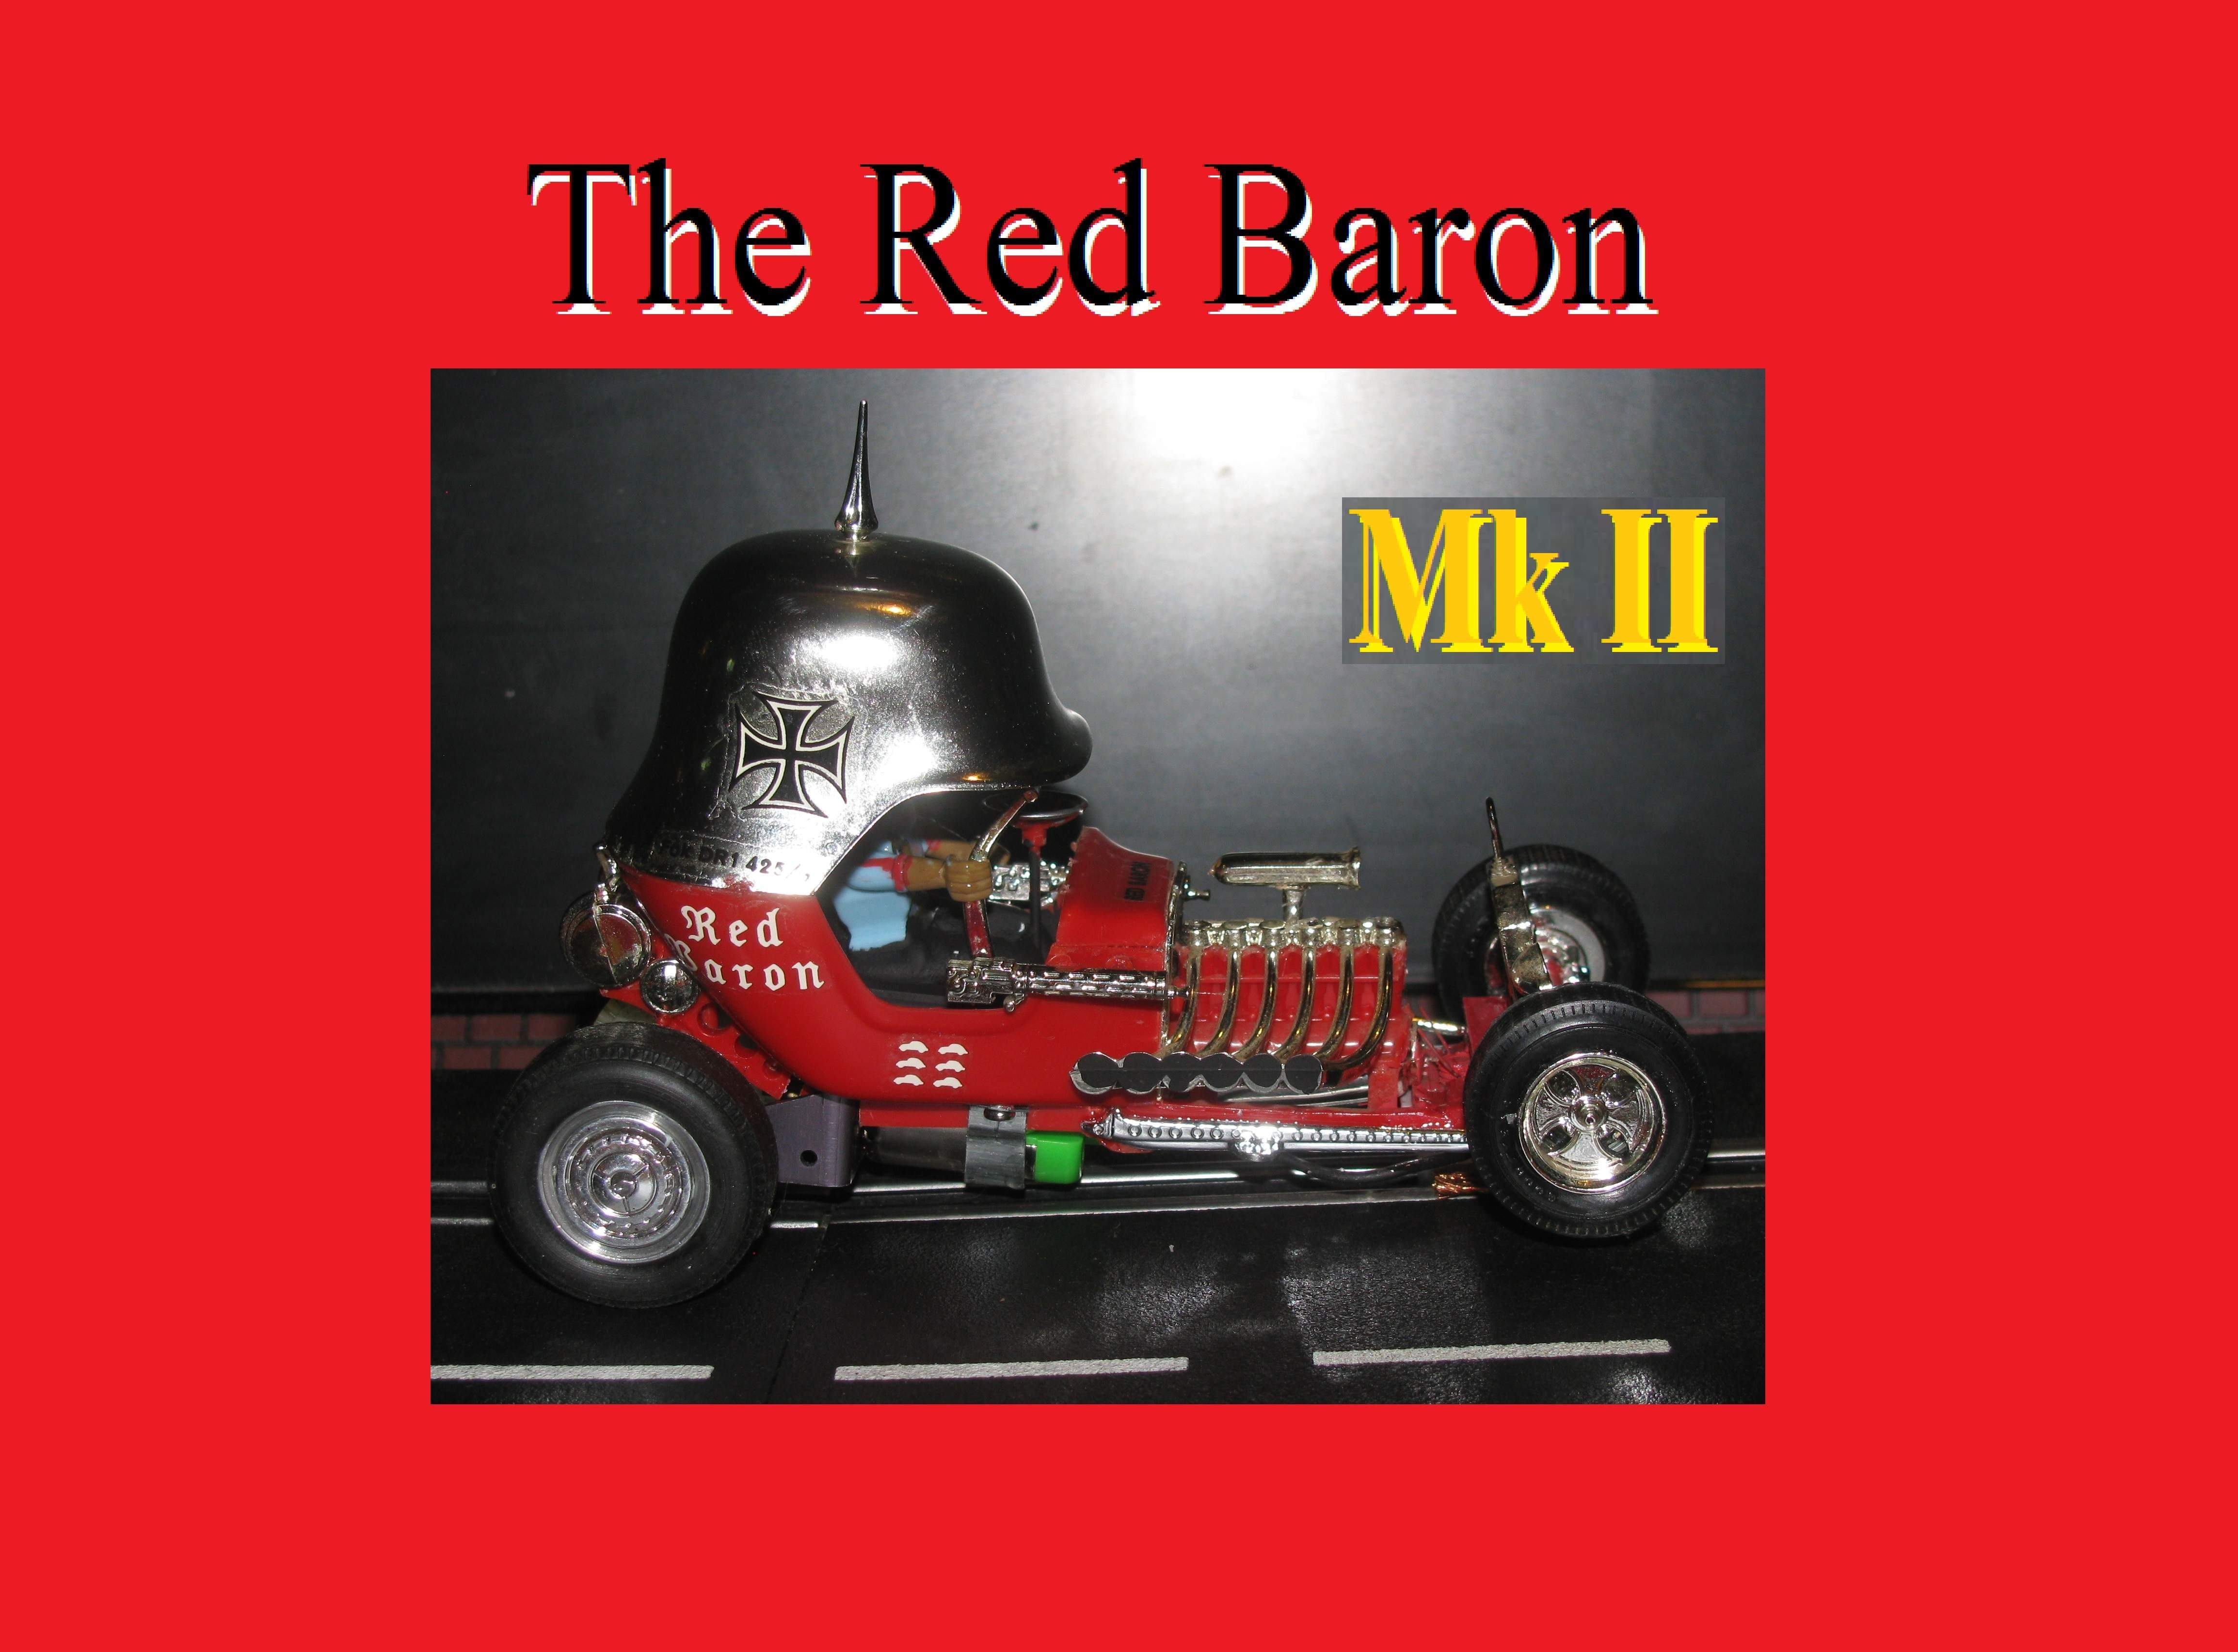 *SOLD Pending completion - ?boytoy22?* Price will be adjusted into package deal including adjusted combined Insured Shipping * Winter Super Sale * Vintage Tom Daniels Monogram Red Baron Hot Rod Roadster Slot Car 1:24 Scale